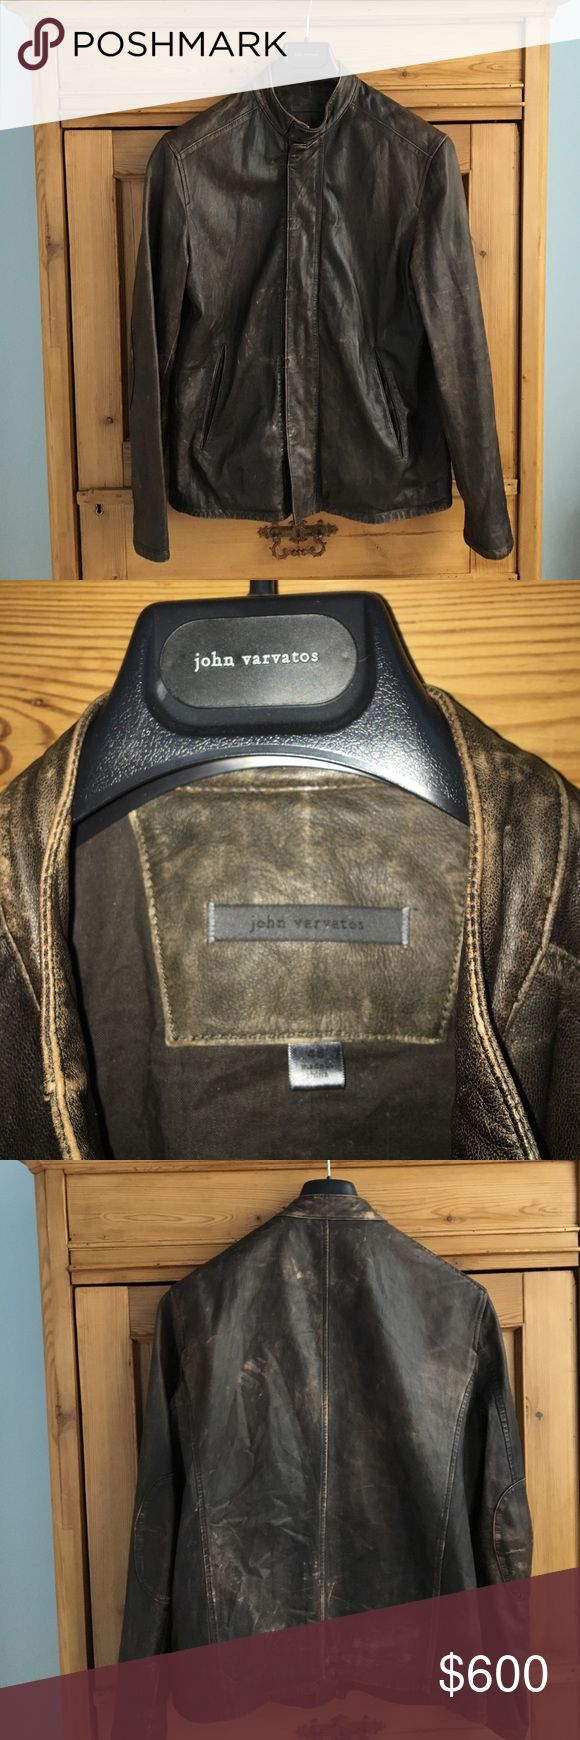 Men's brown lamb skin John Varvatos jacket Men's brown super soft lamb skin leather John Varvatos jacket. Like new size 46. All lamb skin, cotton inner lining, with one inside pocket. Zipper and hook and eye closure (see photo) as well as elbow patches of the same material. Marks you see on photo are natural leather marks, jacket was bought this way perfect condition. John Varvatos Jackets & Coats